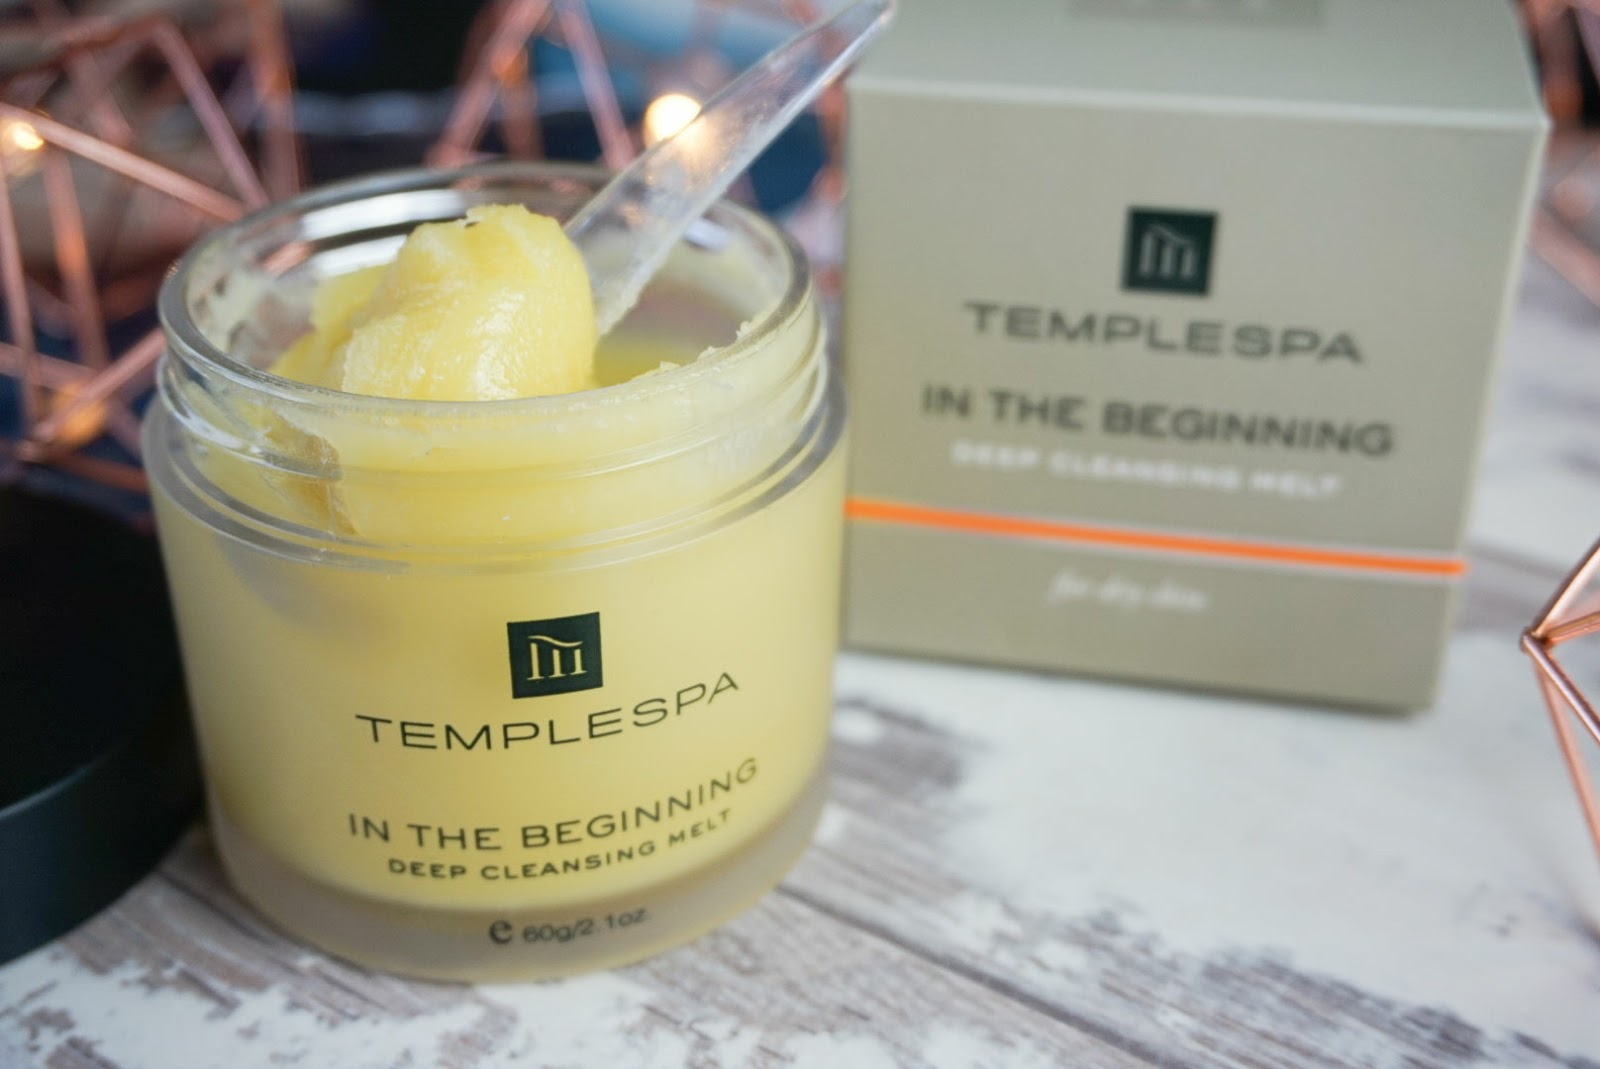 In The Beginning, Deep Cleansing Melt By Temple Spa